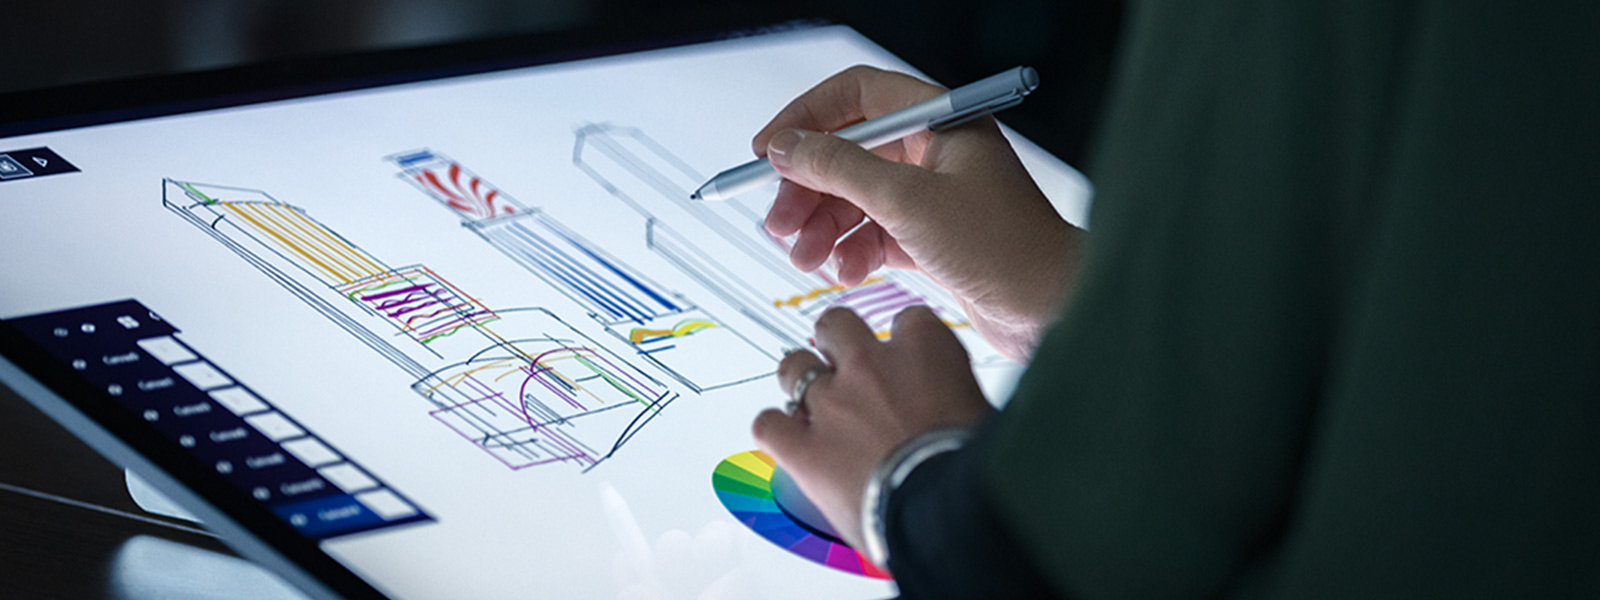 Person using Surface Dial and Pen on Surface Studio screen to create architectural drawings.